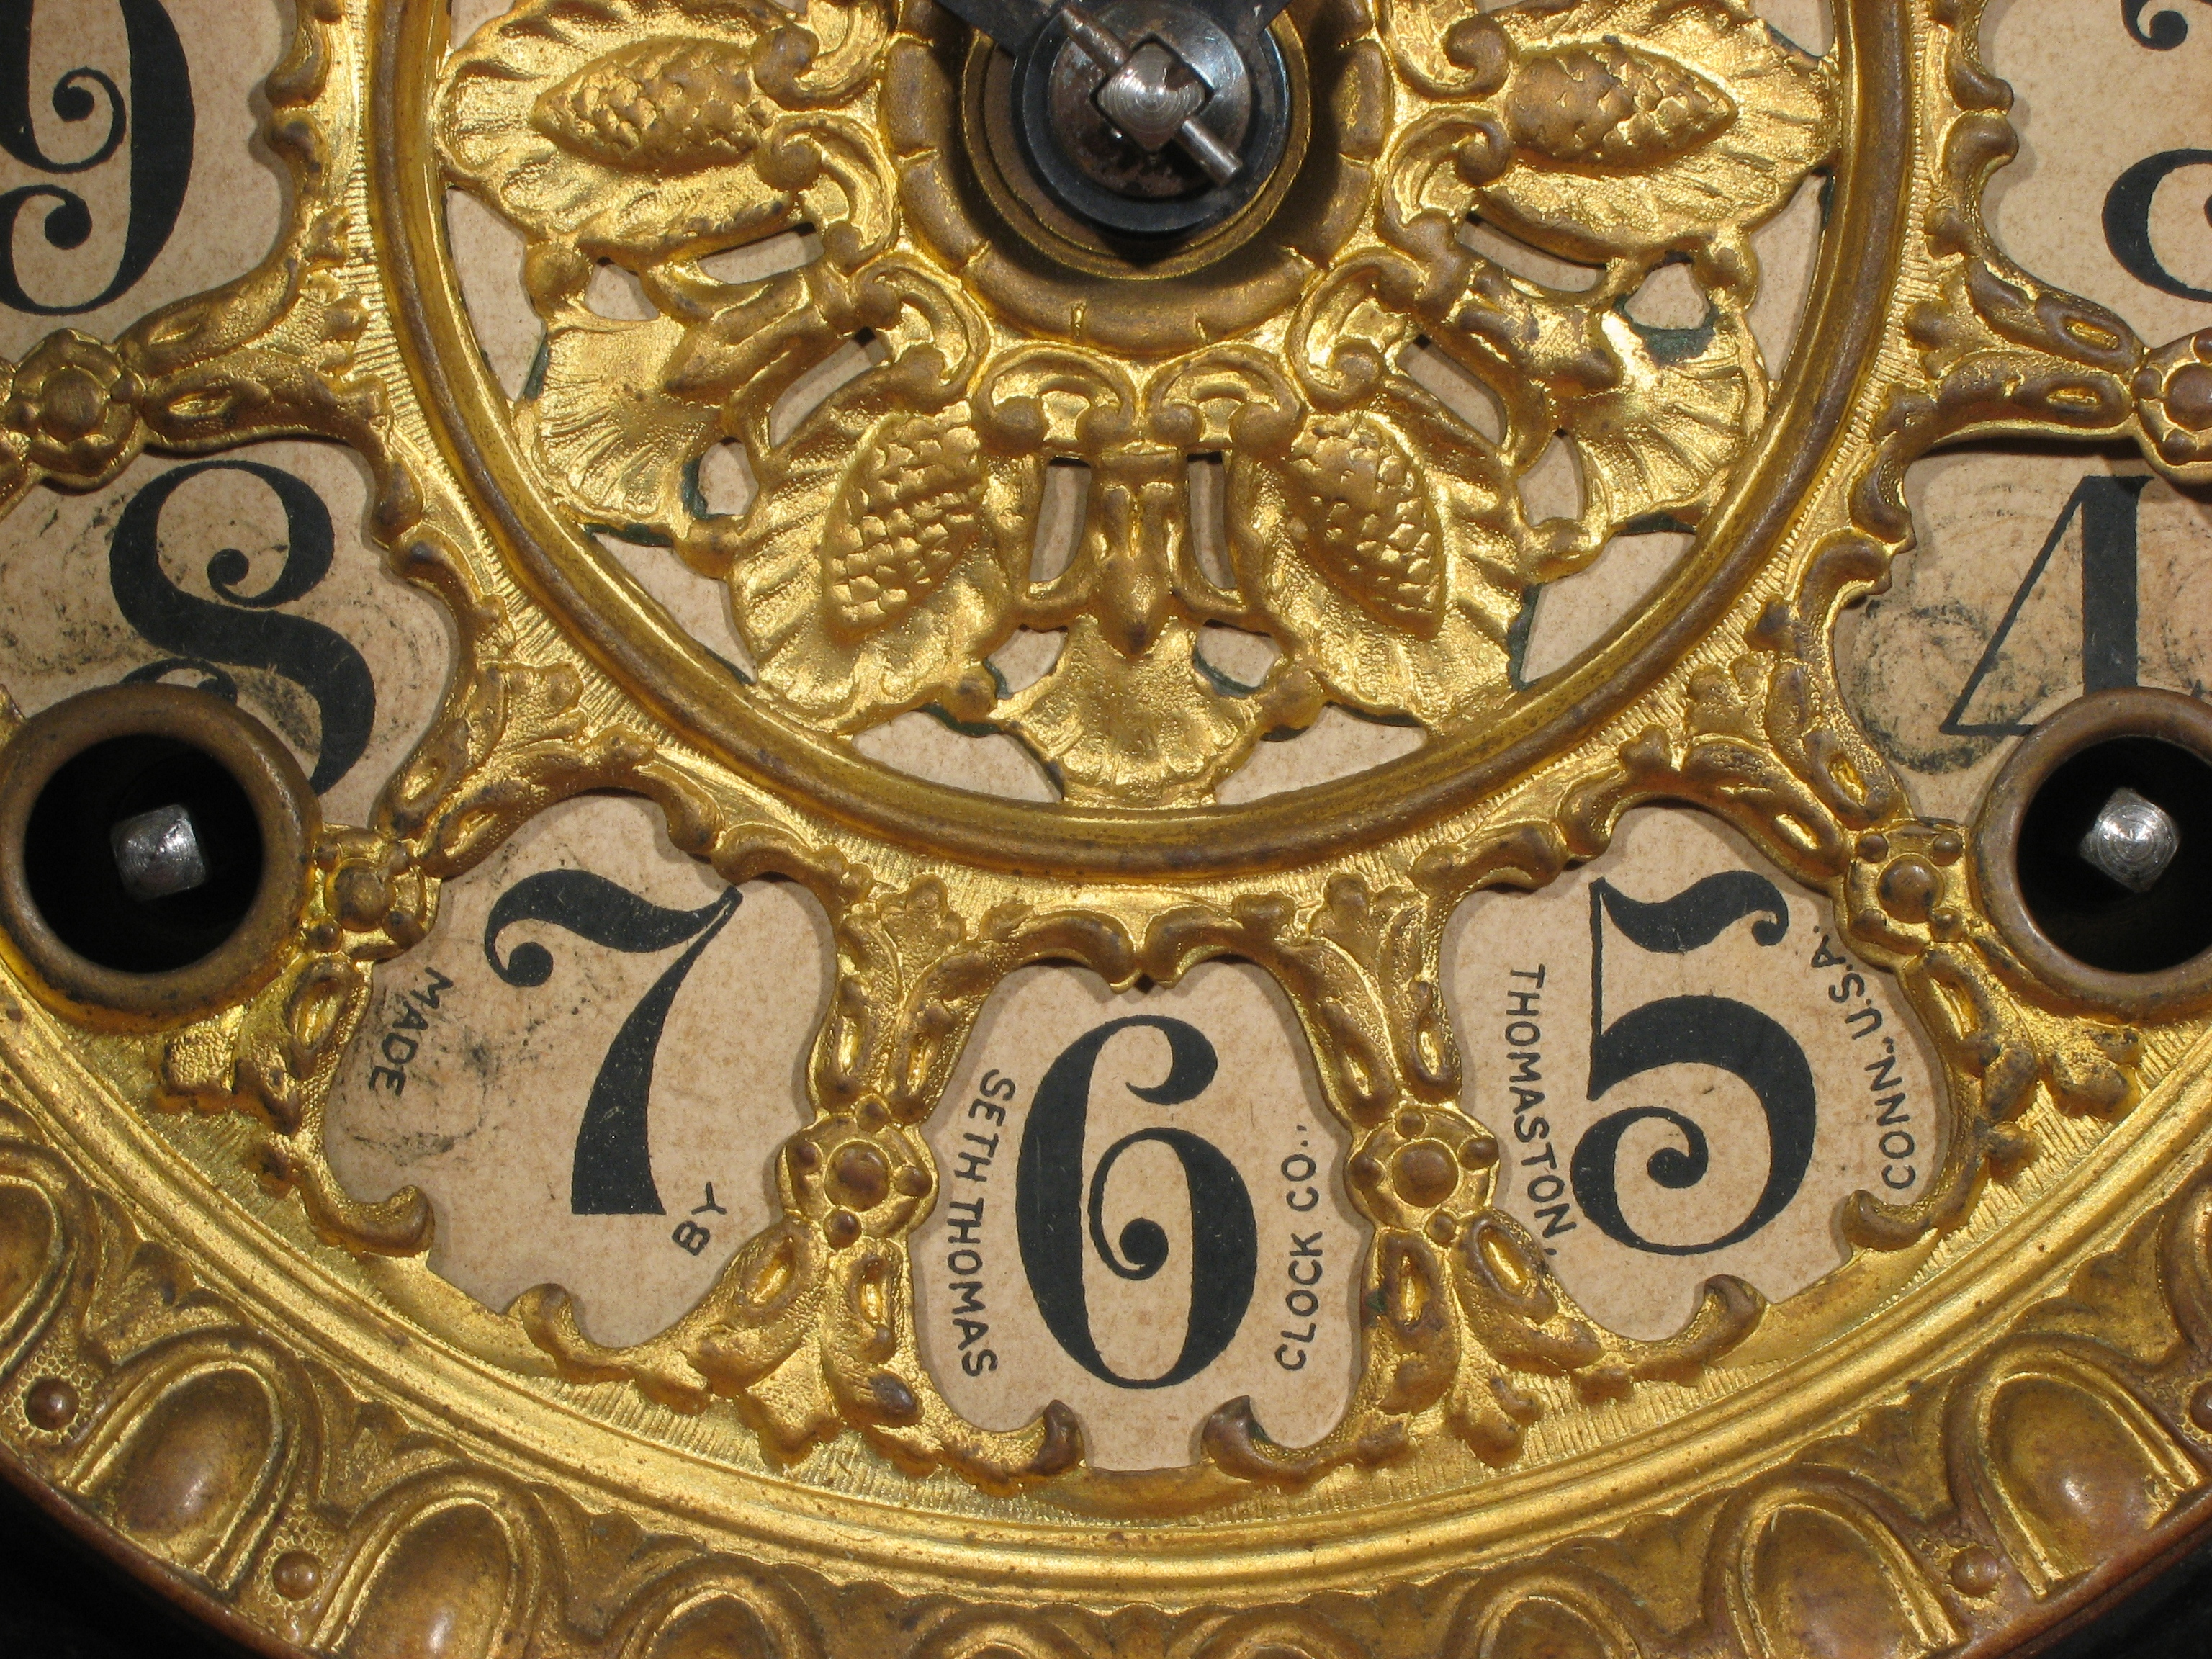 dating seth thomas adamantine clocks He has made so many unique and antique seth thomas clocks  adamantine, adjust speed,  one of the best dating sites with russian women – i advise you.